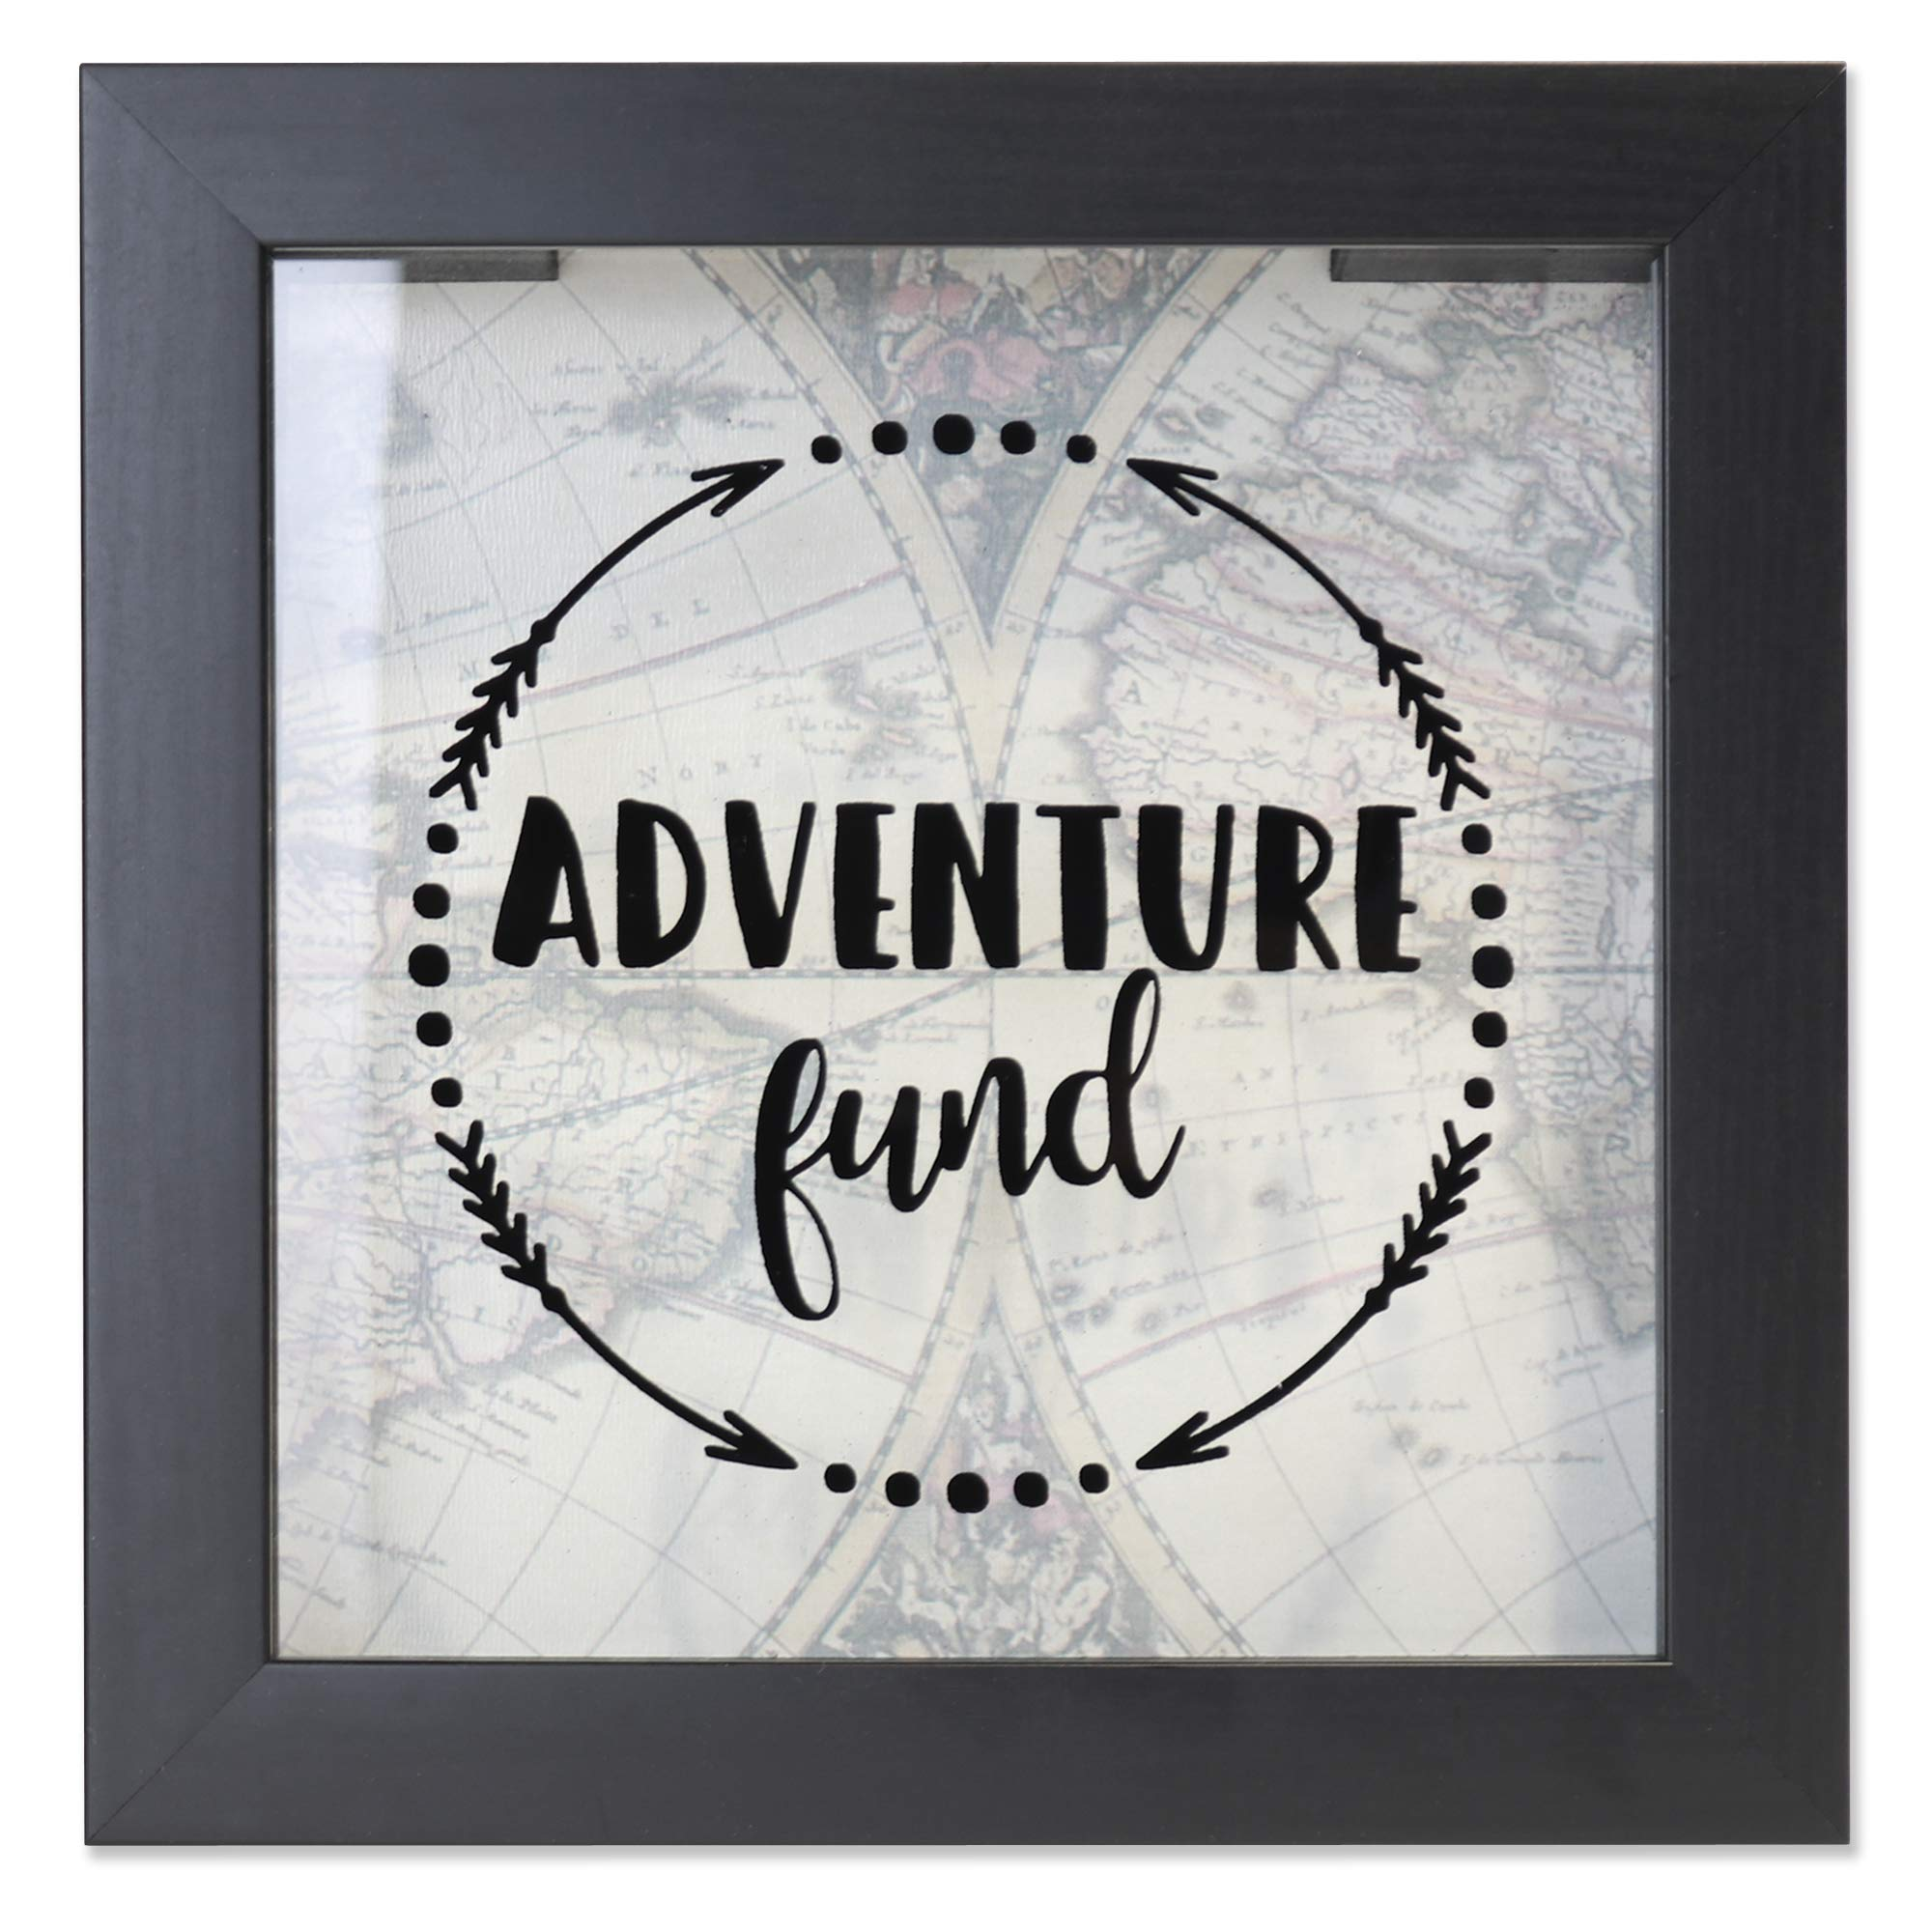 Lawrence Frames 8x8 Adventure Fund Black Shadow Box Frame by Lawrence Frames